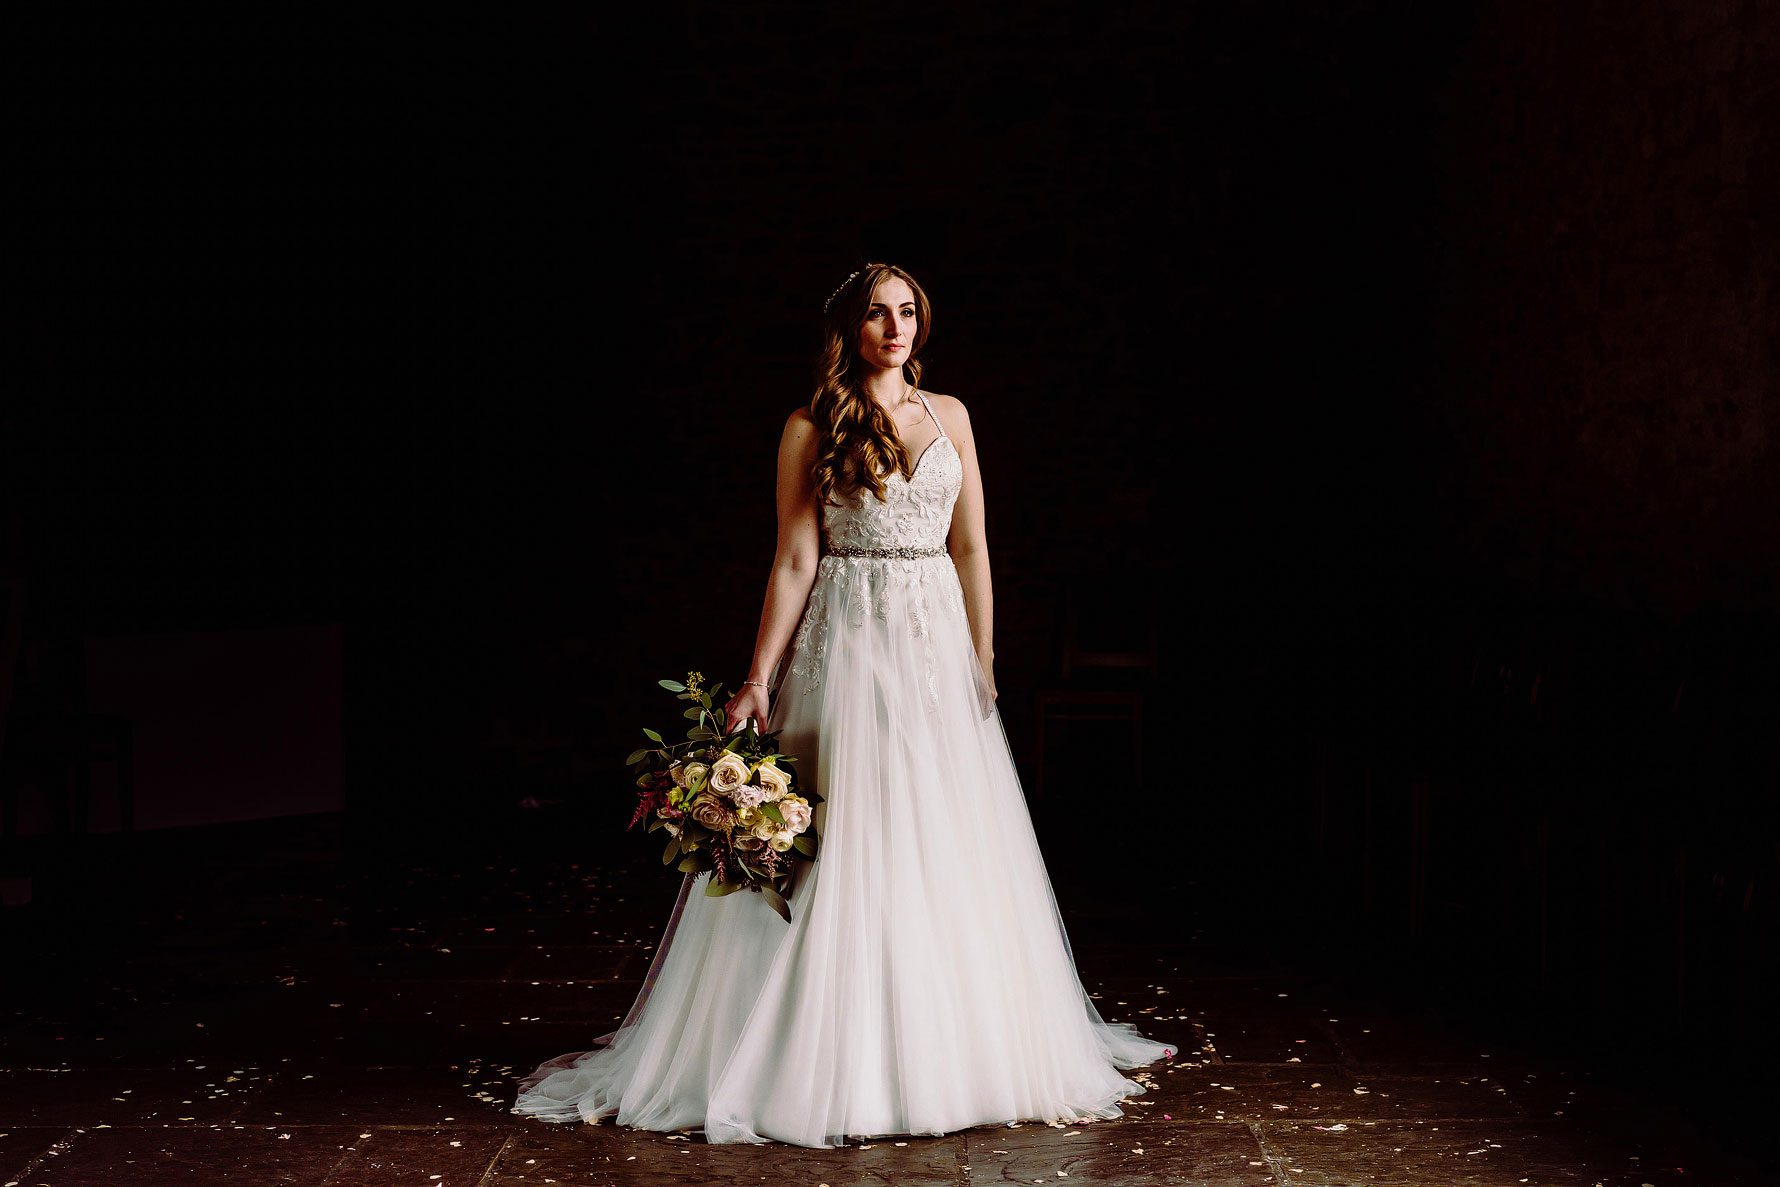 a stunning portrait of a bride by Elliot w patching photography